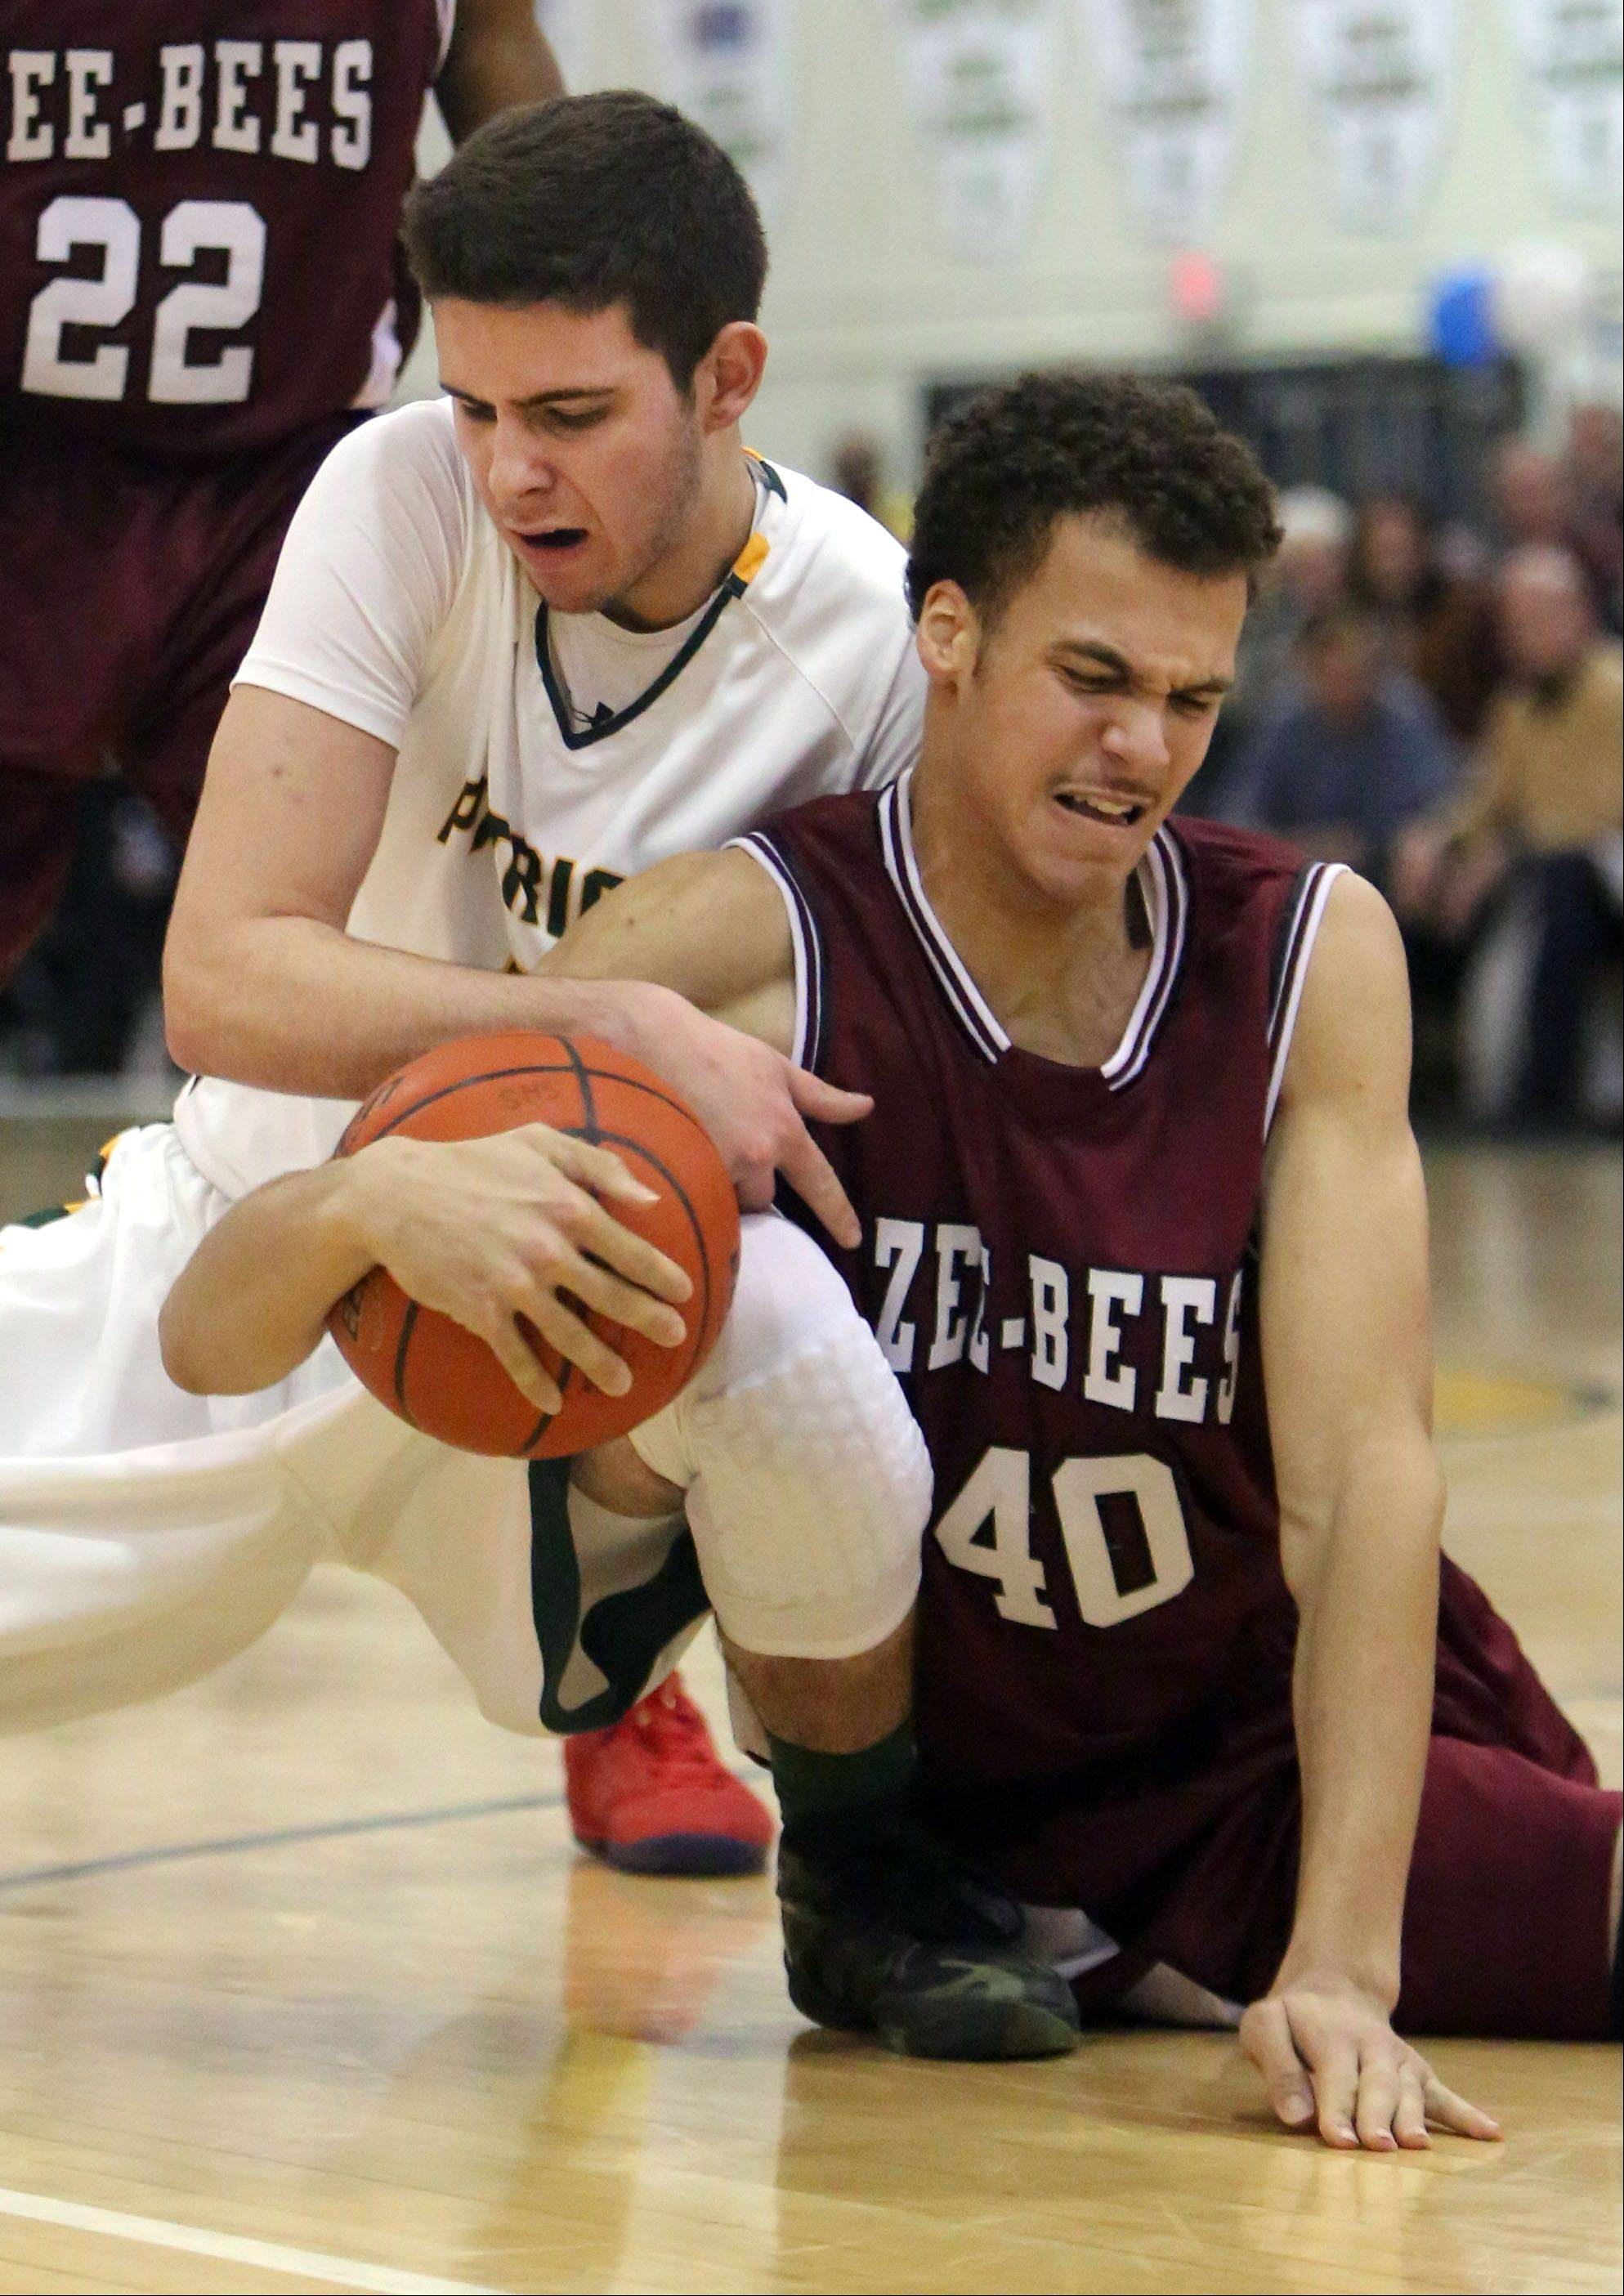 Stevenson's Sam Panitch, left, and Zion Benton's Chris Moragne fight for a loose ball.